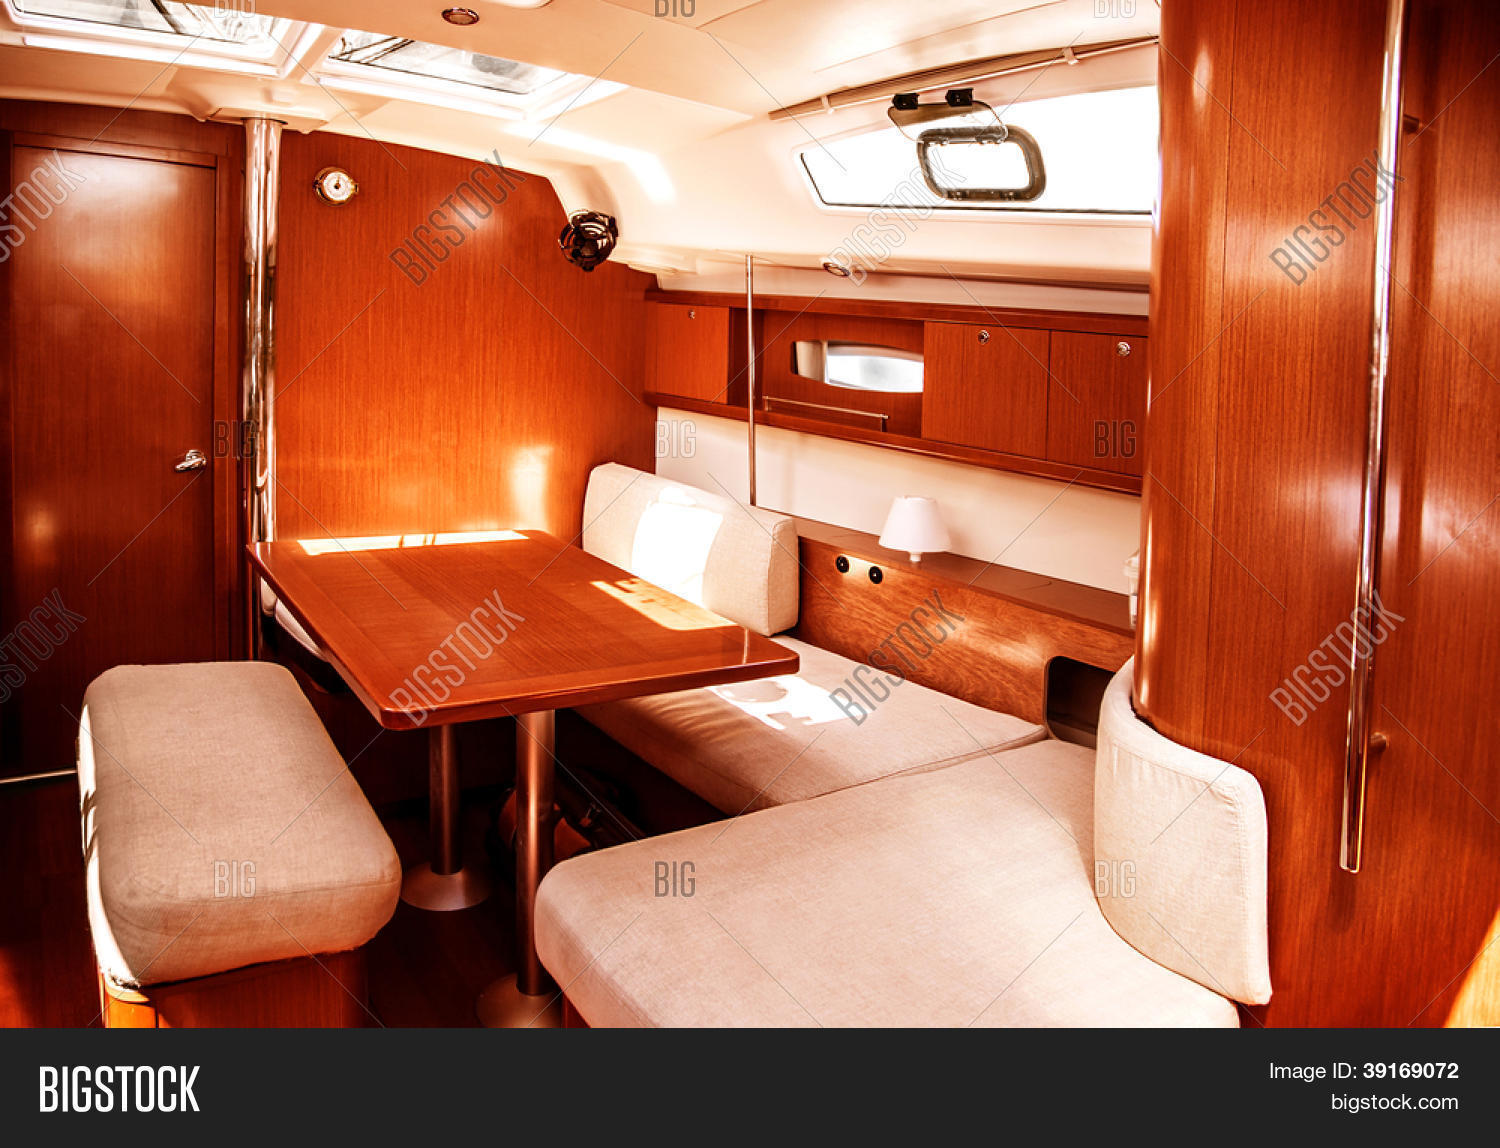 Image Of Luxury Ship Interior Comfortable Sailboat Cabin Expensive Wooden Design And Soft White